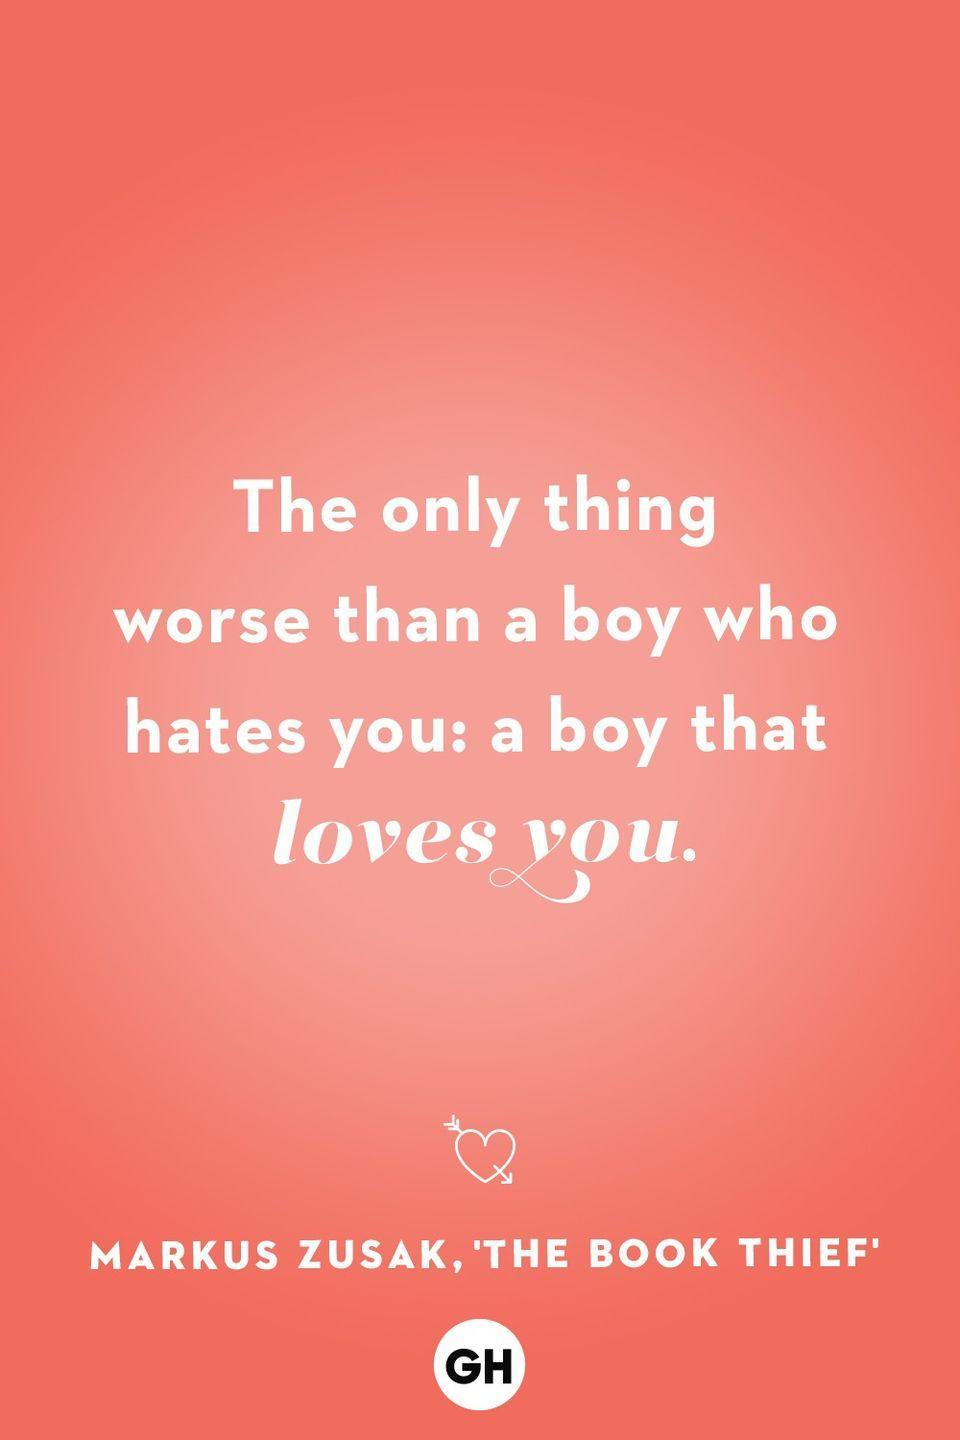 <p>The only thing worse than a boy who hates you: a boy that loves you.</p>